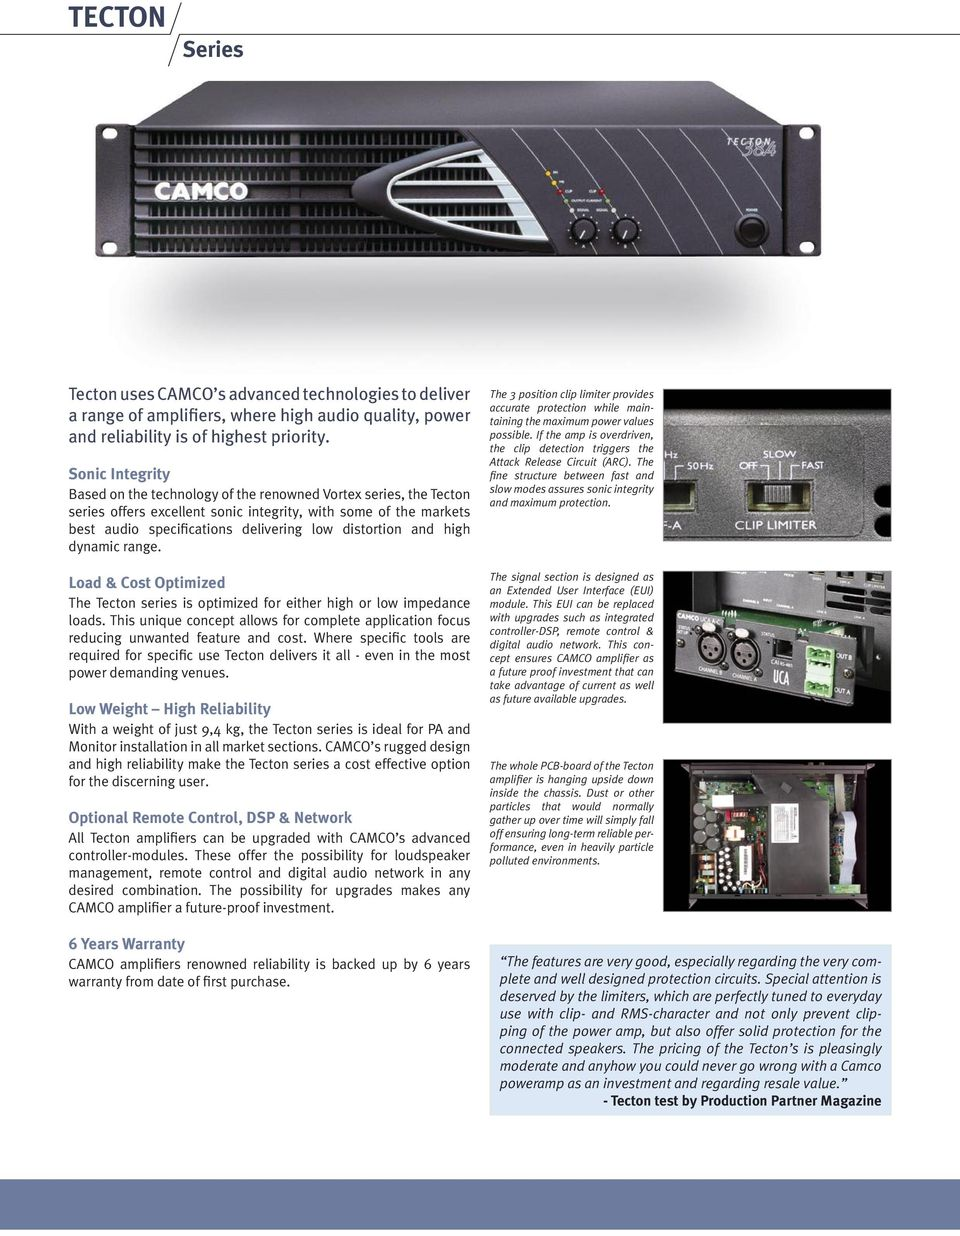 20db Vhf Amplifier Camco Powerful Pure Sonic Performance Pdf And High Dynamic Range Load Cost Optimized The Tecton Series Is For Either